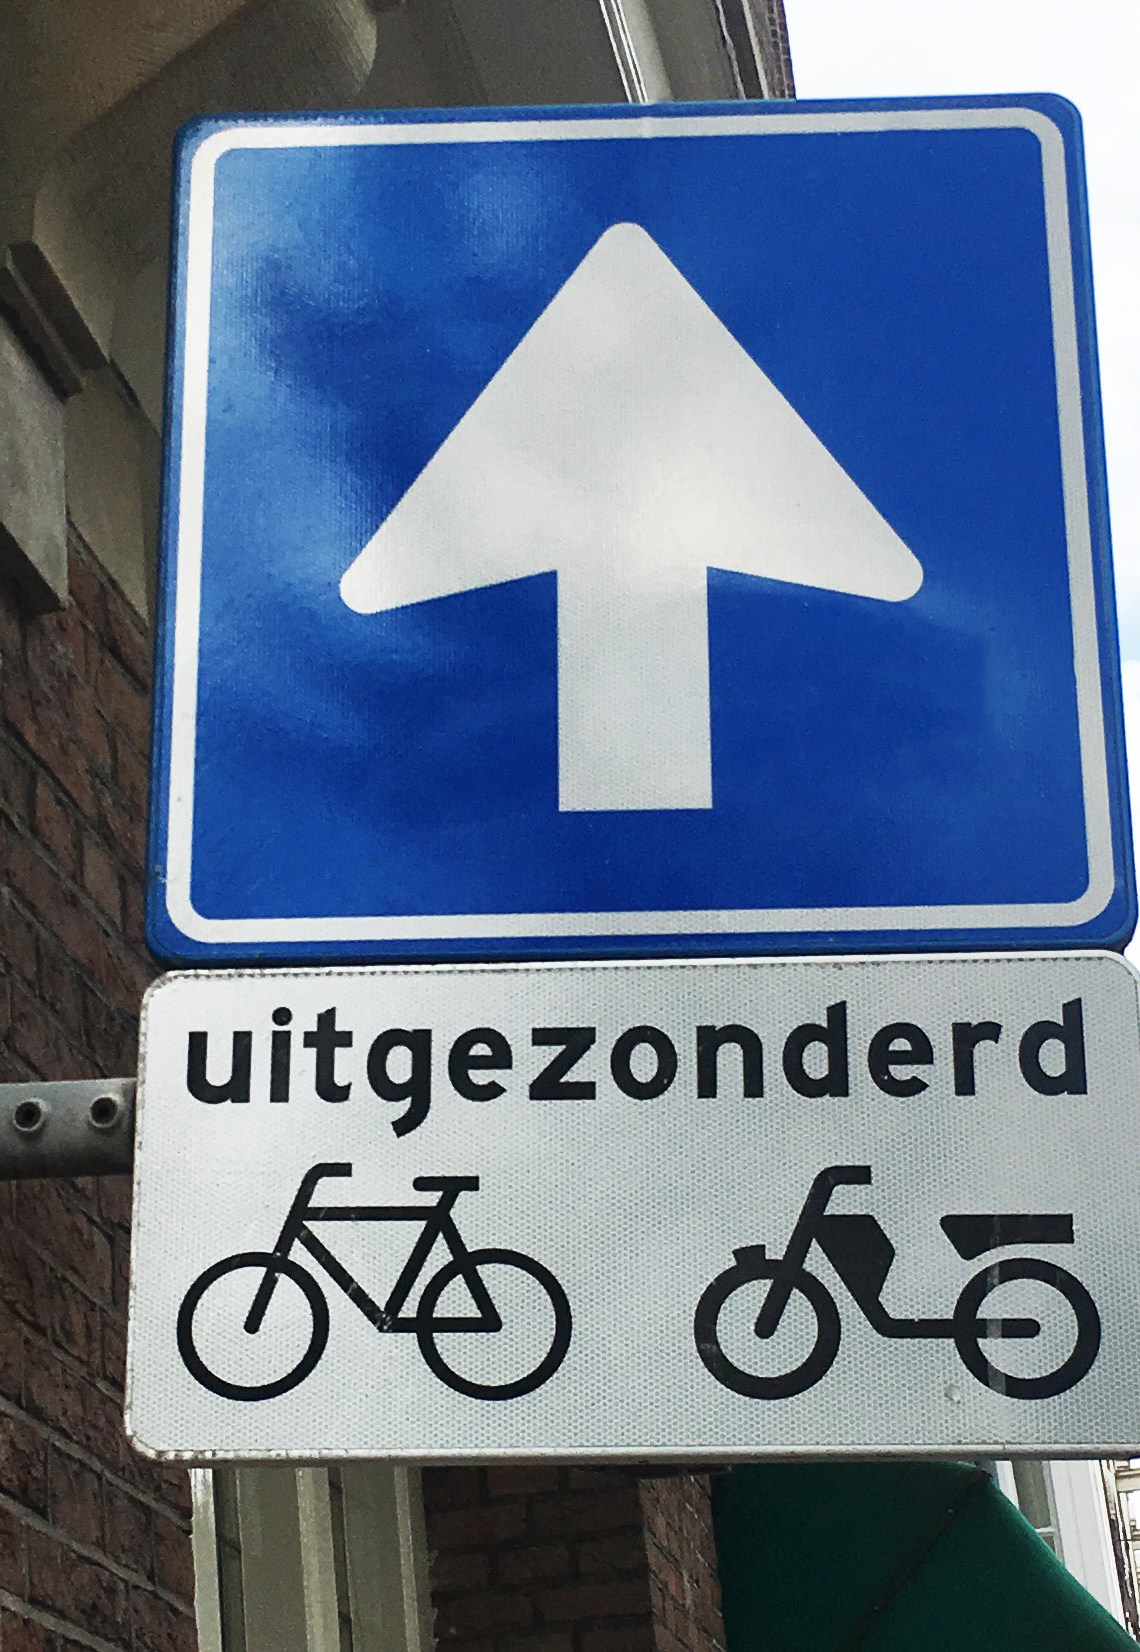 Uitgezonderd bike sign | Biking in the Netherlands | Utrecht | The Travel Medley